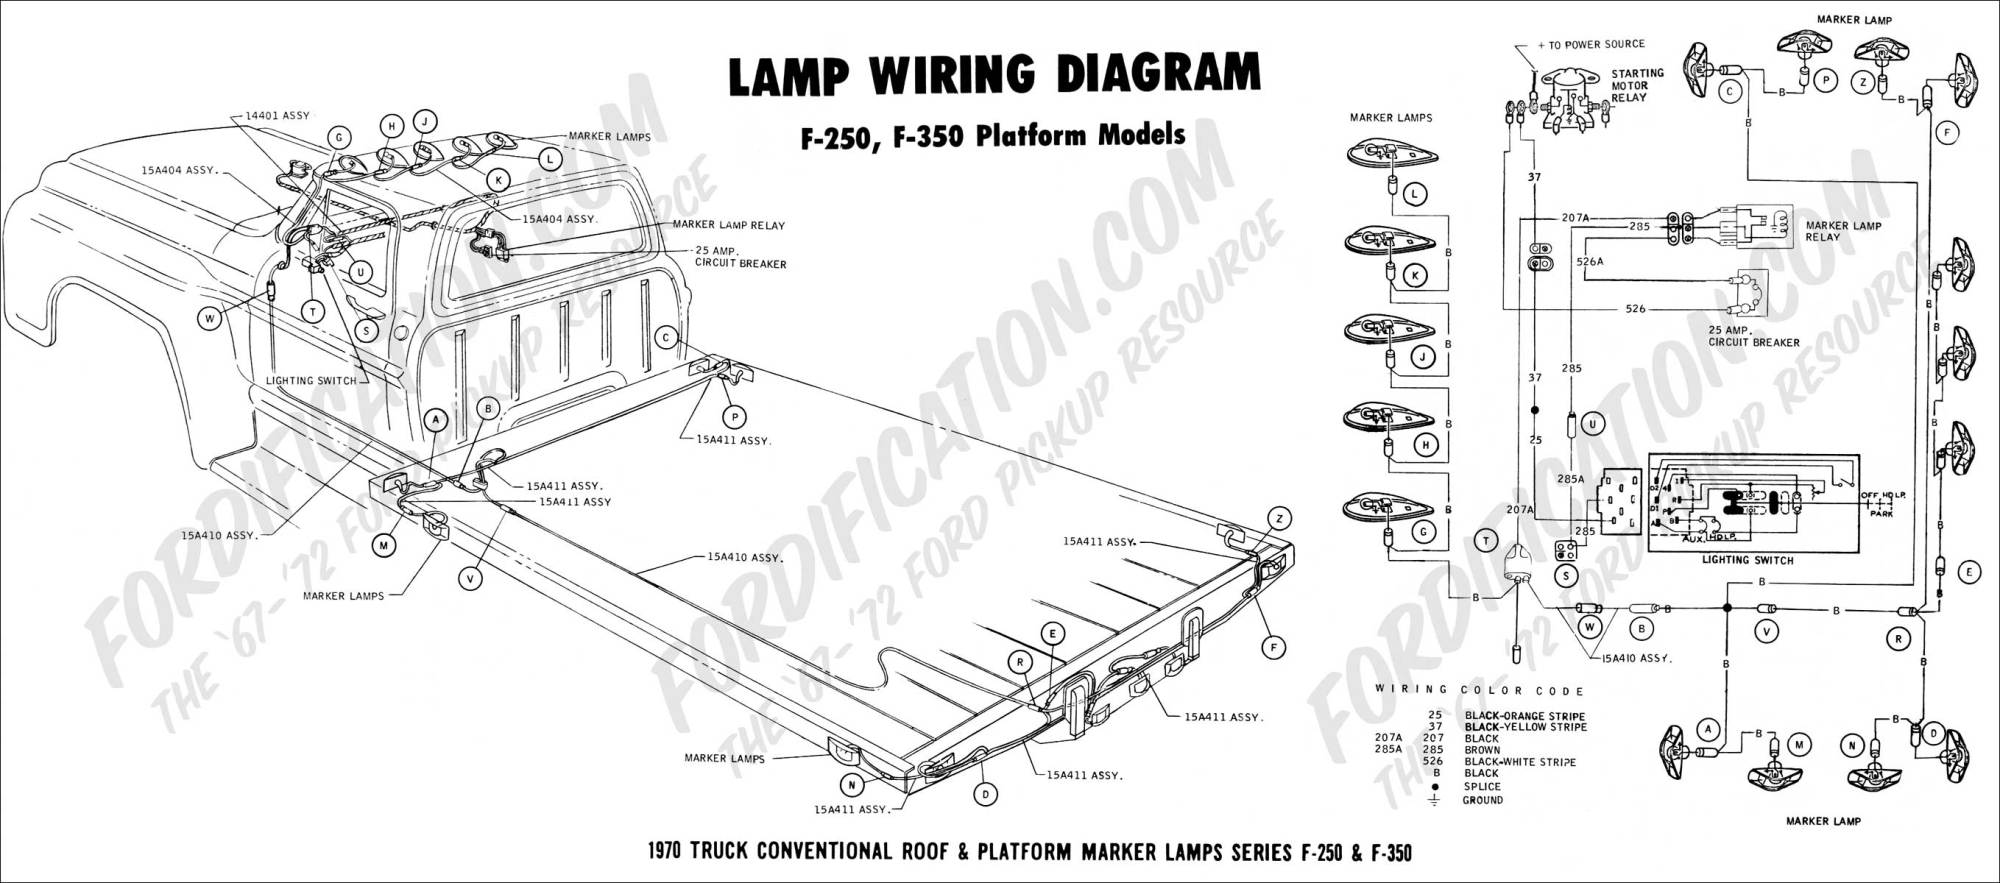 hight resolution of 1978 ford f250 wiring diagram wiring diagram 1978 ford f250 wiring diagram 1978 ford f250 wiring diagram